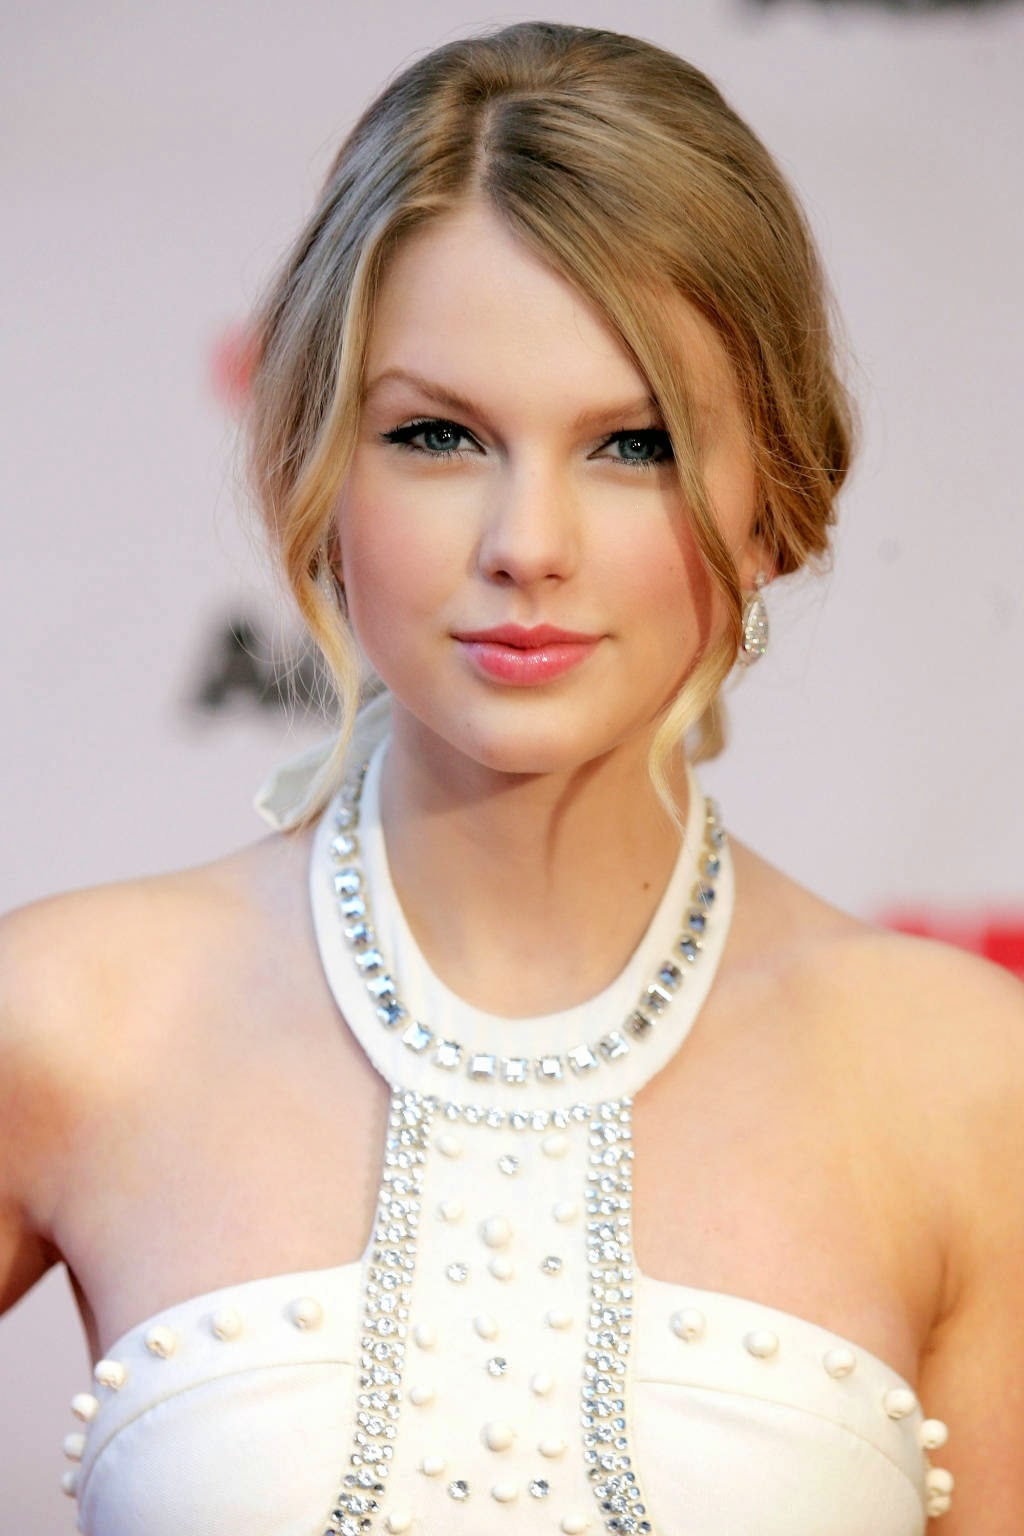 taylor swift white dress taylor swift taylor swift taylor swift Taylor Swift